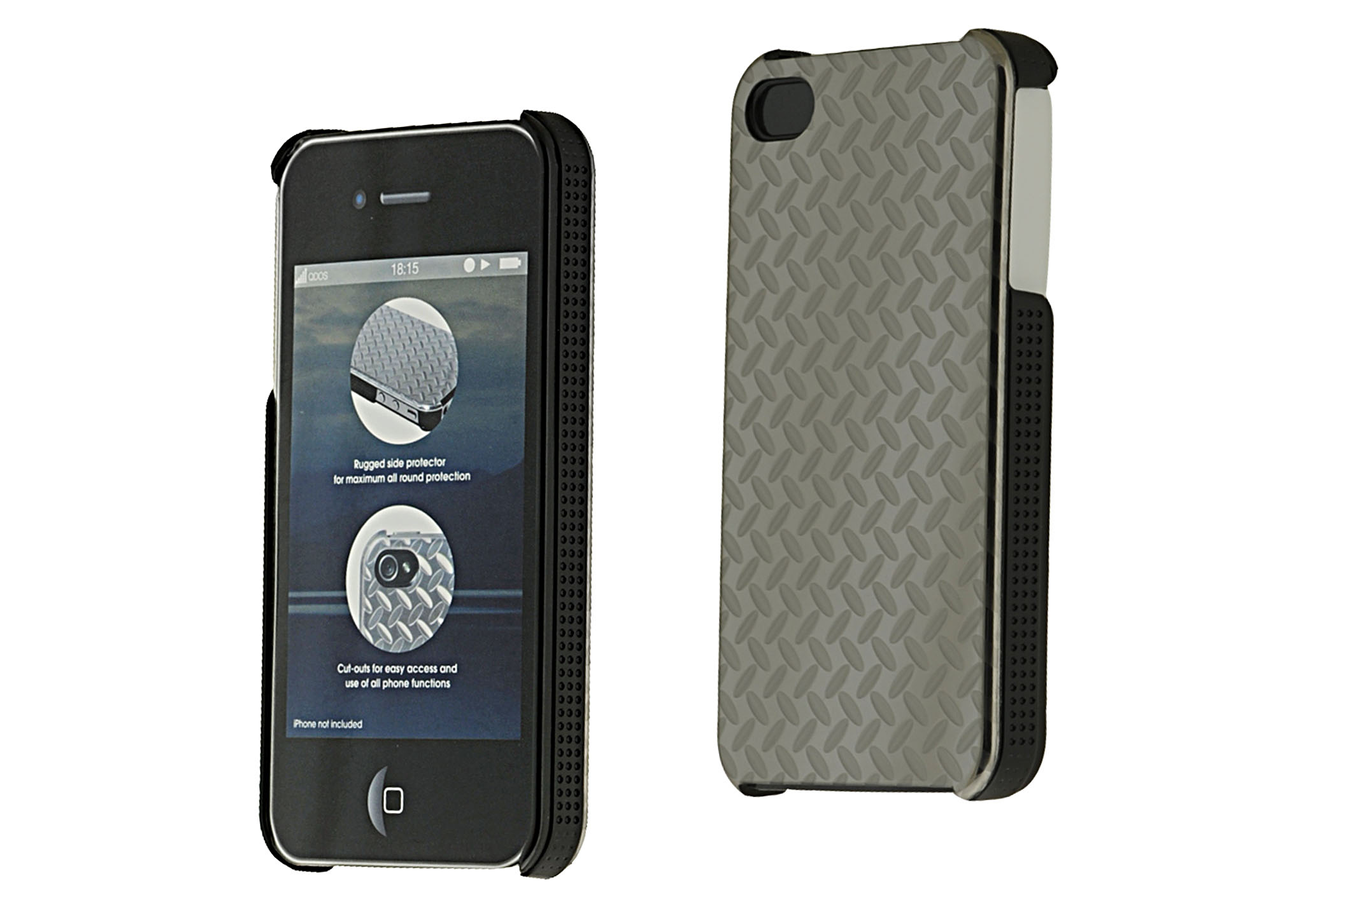 Housse pour iphone qdos housse steel iphone4 1301616 for Housse pour iphone